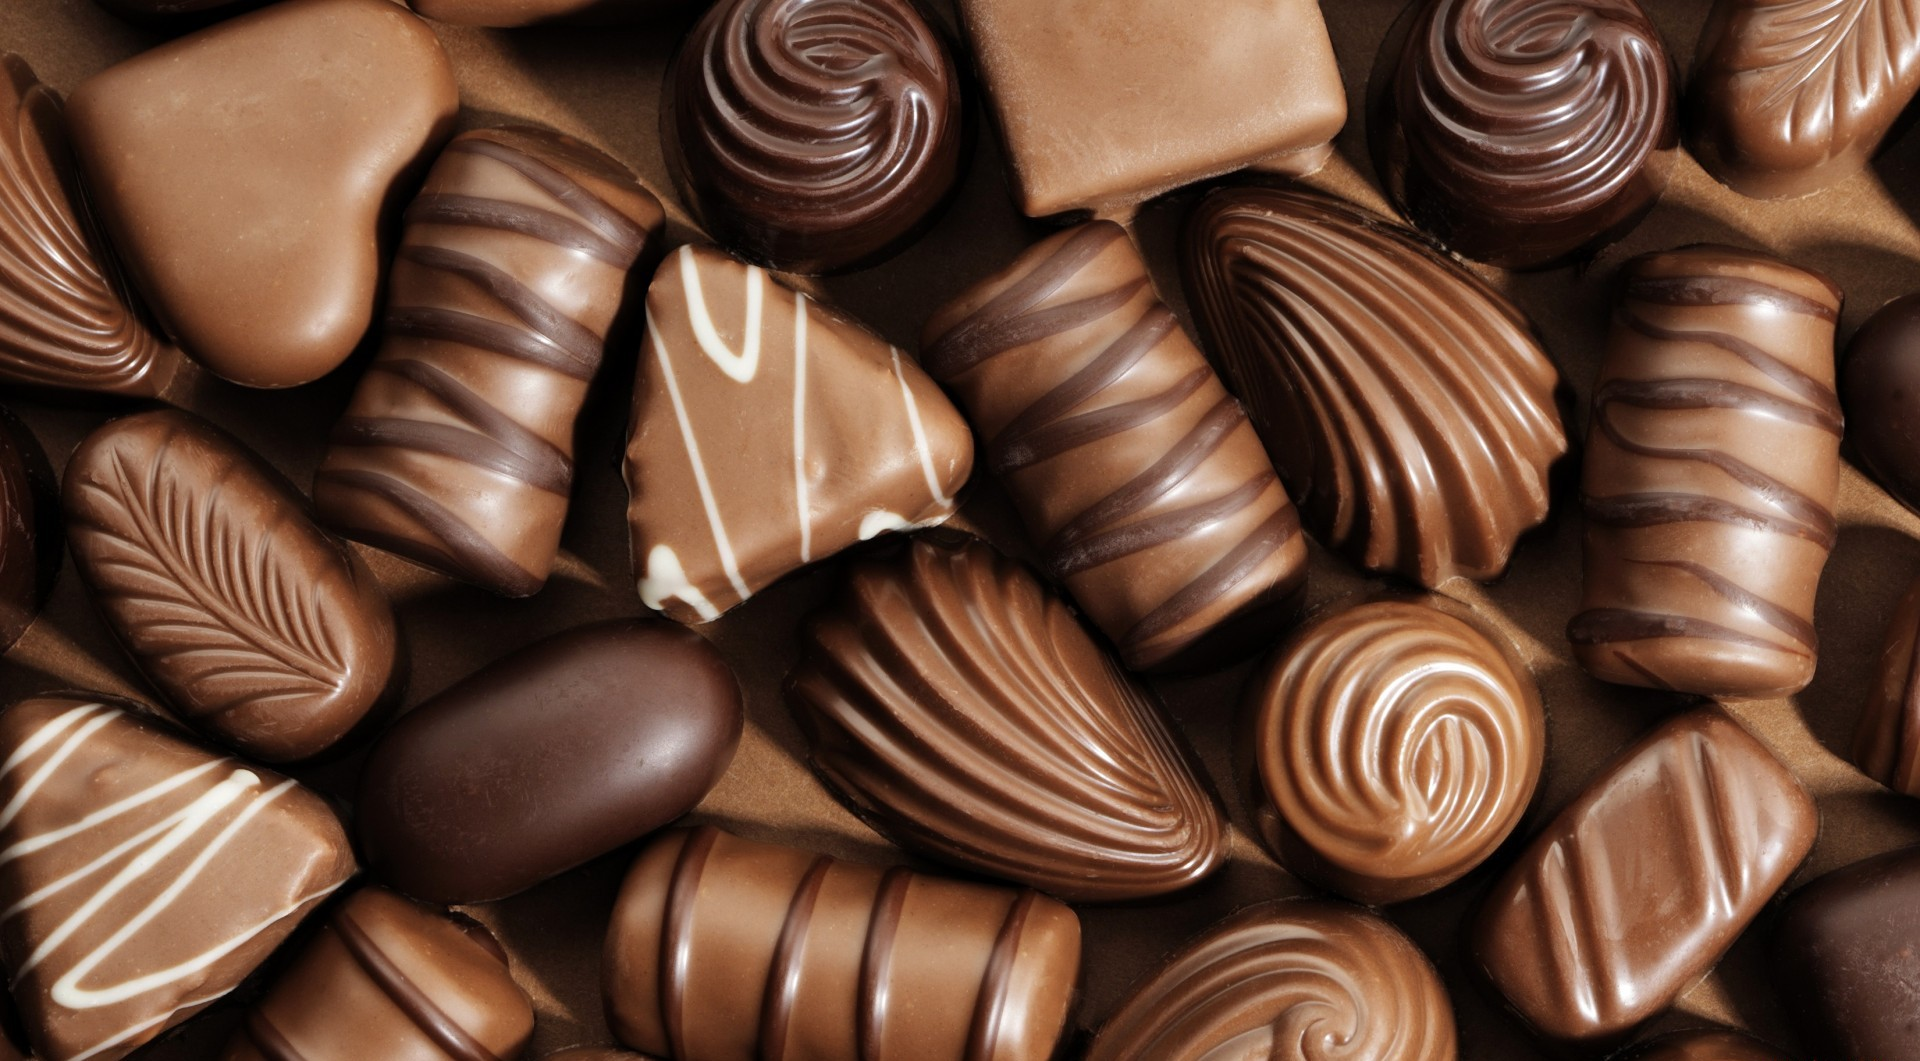 Chocolate   There's a reason those heart-shaped boxes of chocolate are EVERYWHERE around Valentine's Day… First of all, who doesn't like chocolate? But second, chocolate contains certain compounds that aid in the production of  feel-good hormones (namely, serotonin) , which can make you feel good...everywhere! Plus, research shows chocolate can  relieve stress, improve your mood and add a little pep in your step  (read: caffeine) that may help rid the bedroom blahs.   Verdict:  Chocolate's libido boosting properties aren't scientifically proven, but why not munch on a dark chocolate shaped heart to prolong that dance cardio high?